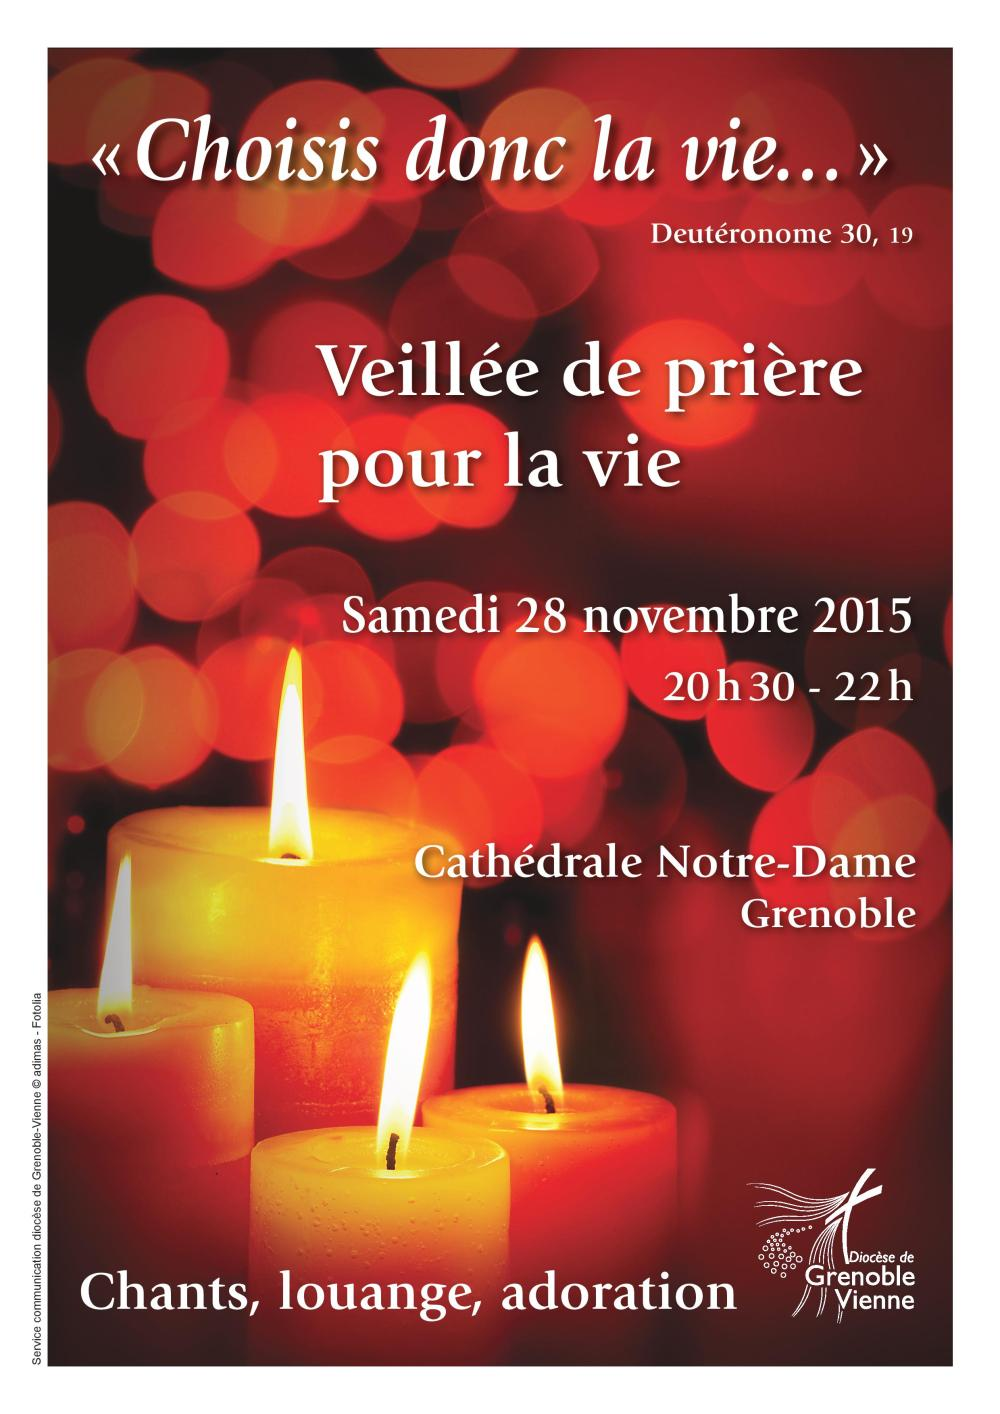 Veillee_priere_vie_cathedrale_nov2015-page-001